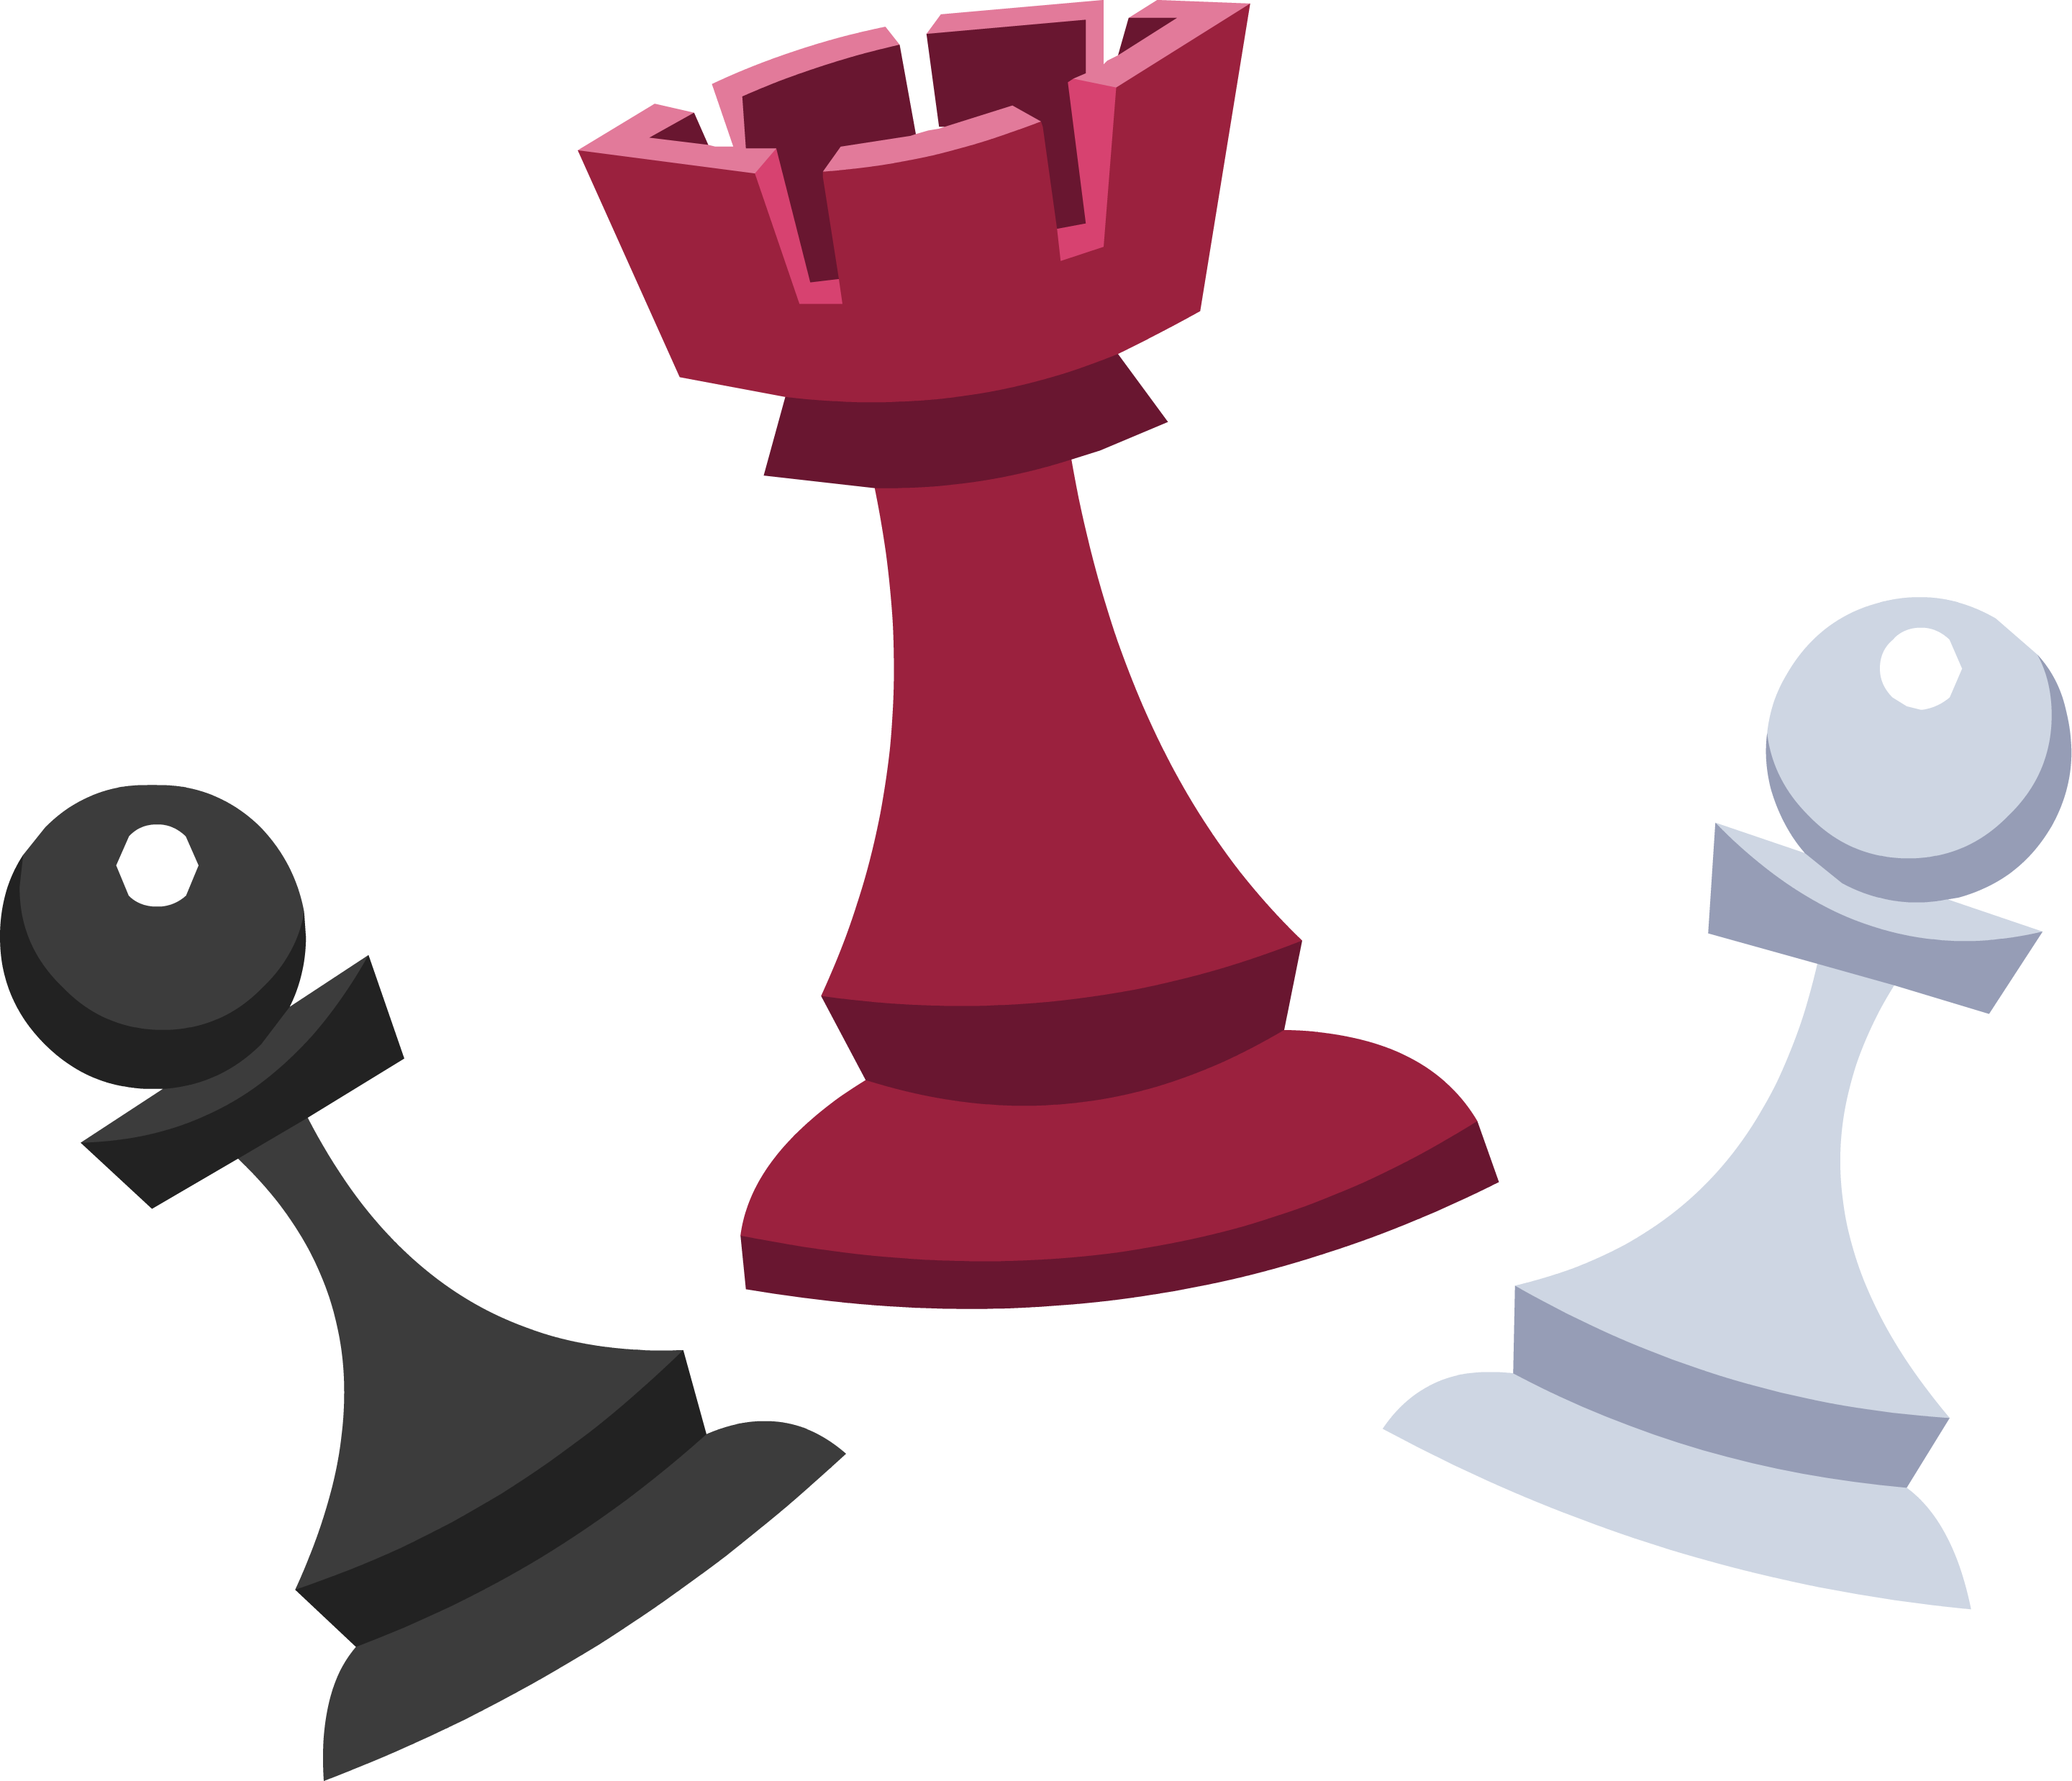 red, black, white chess pieces #39319